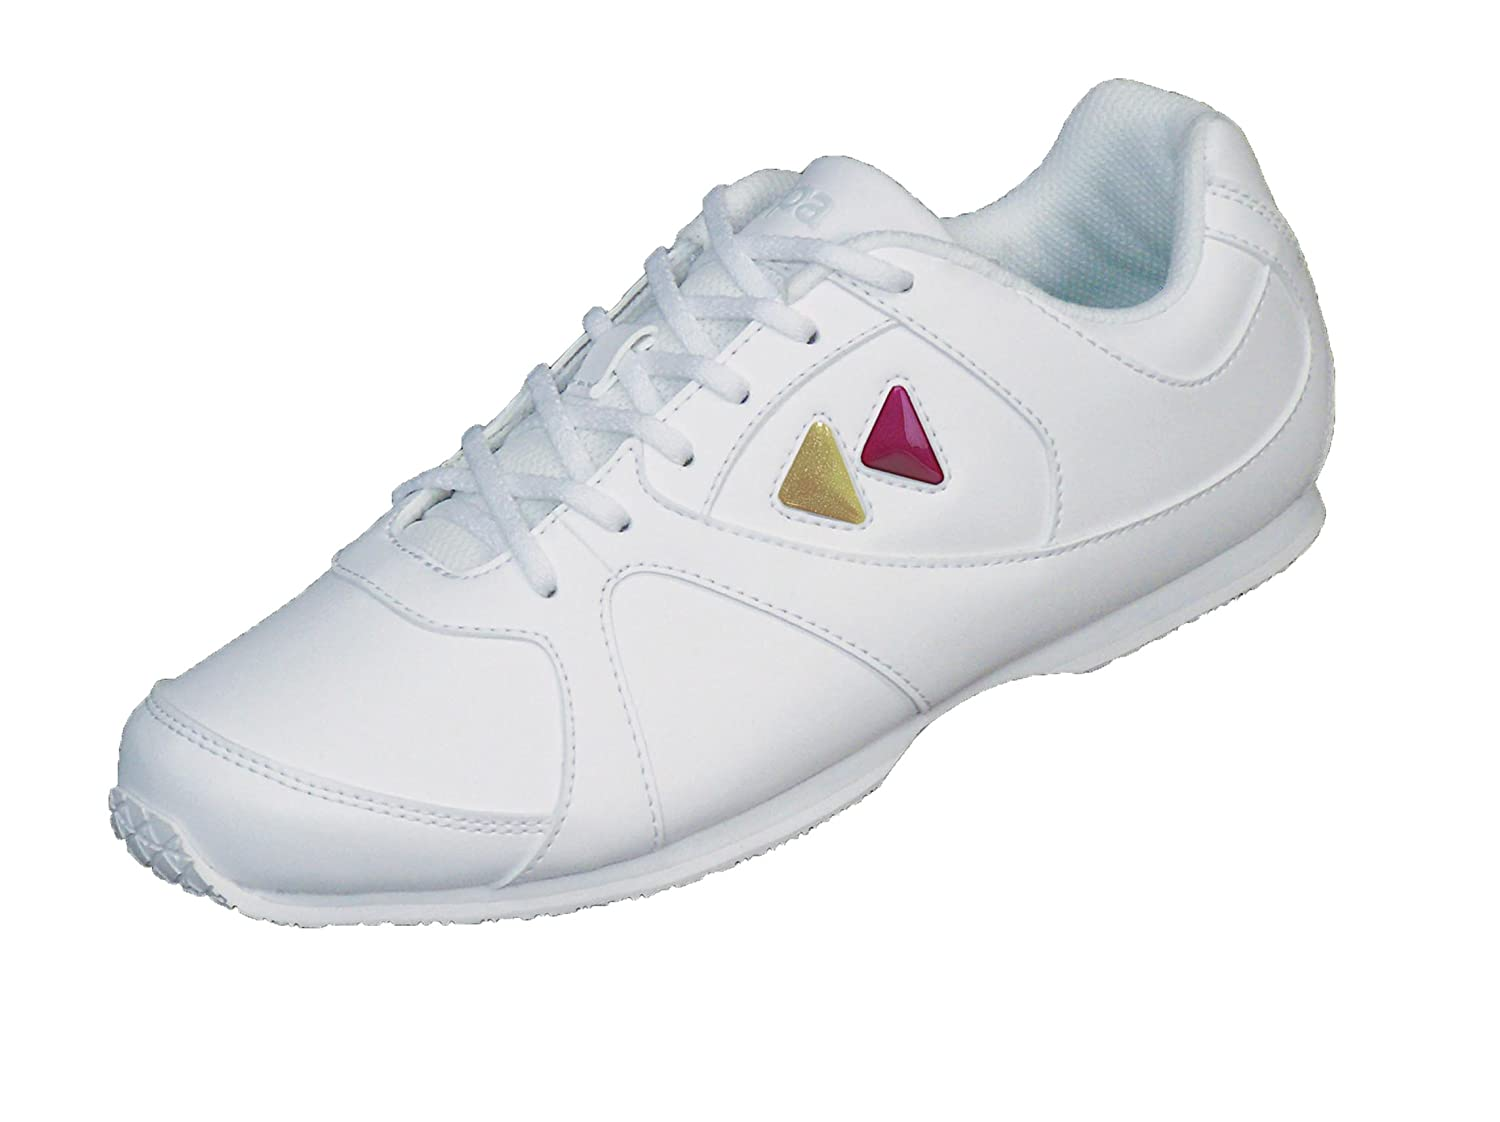 Kaepa Women's Cheerful Cheer Shoe with Color Change Snap in Logo Eric McCrite Company 6315 - 10.0-P